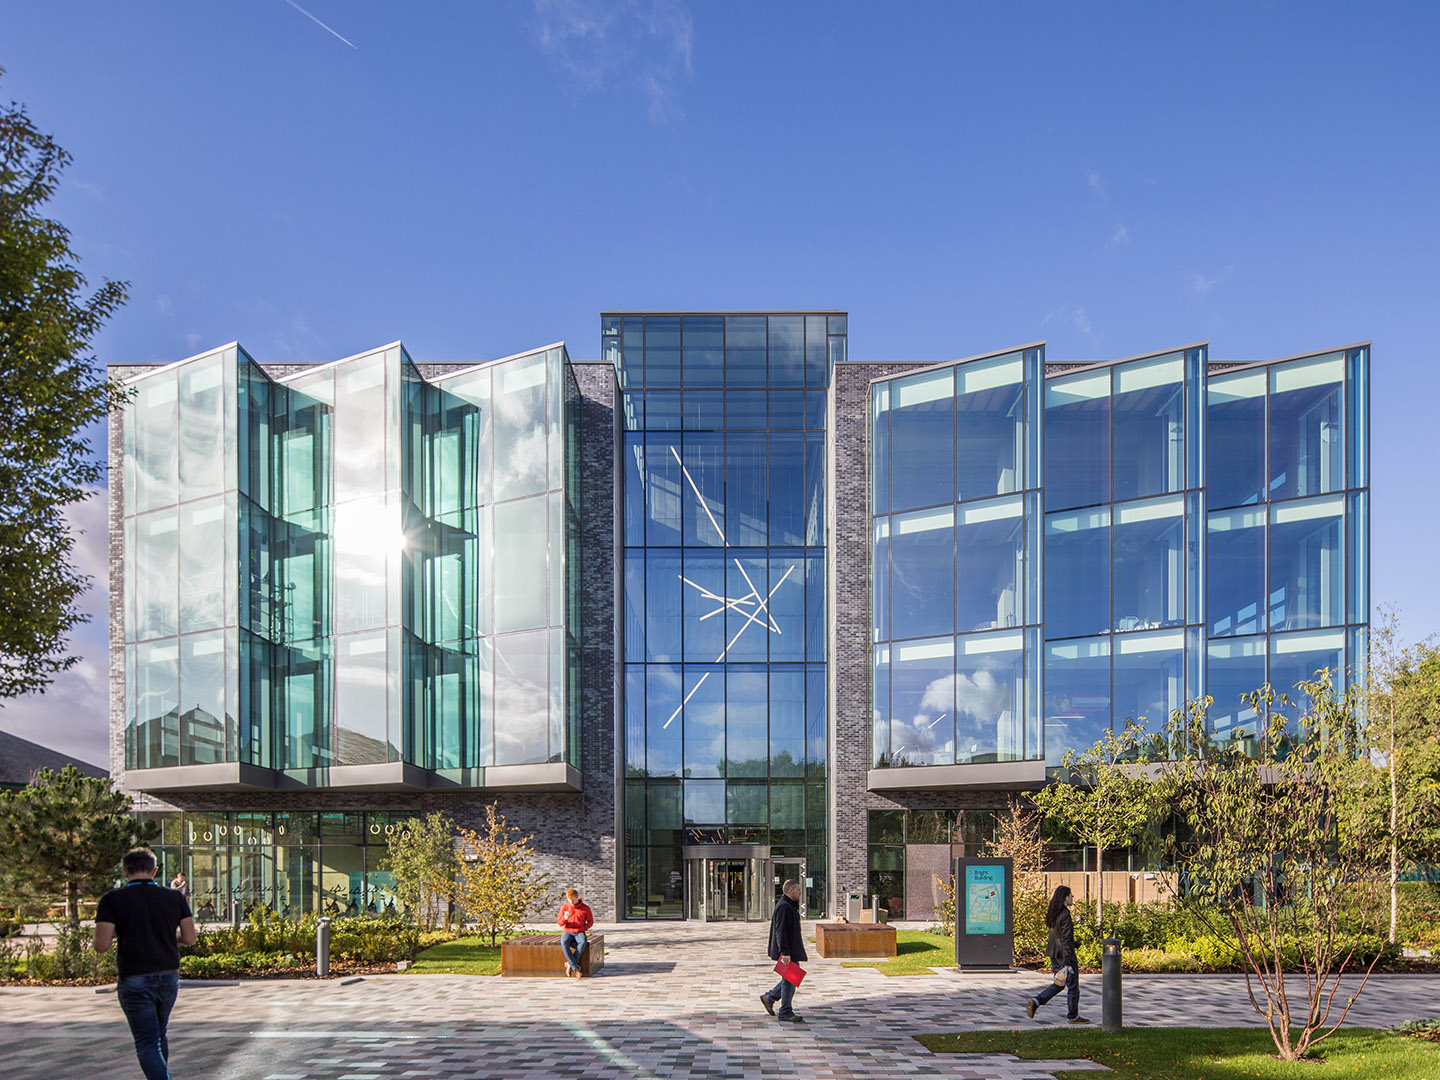 BRIGHT BUILDING, MANCHESTER SCIENCE PARK